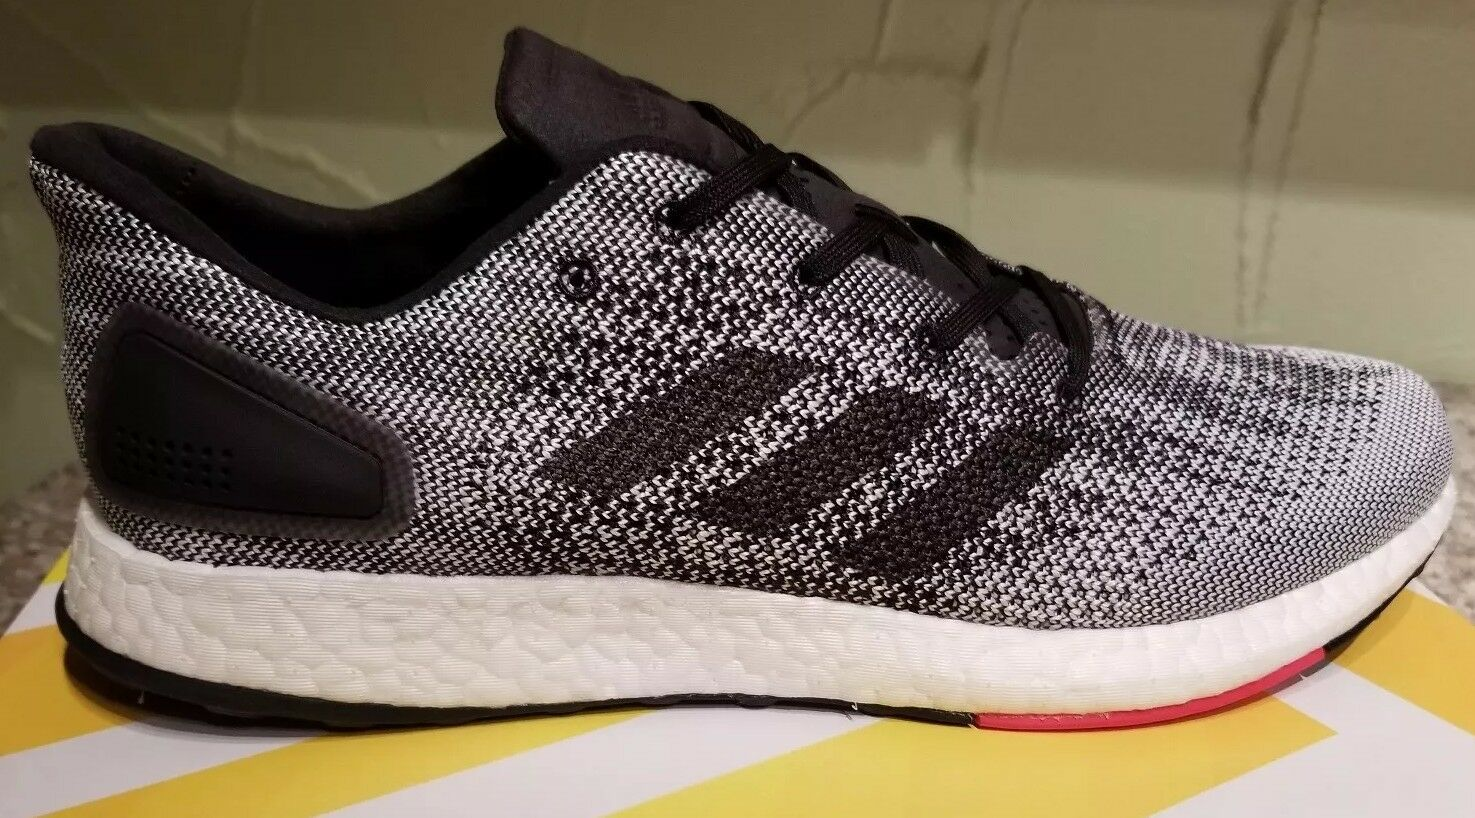 NEW ADIDAS MEN'S PUREBOOST DPR RUNNING SNEAKERS SHOES SIZE 12